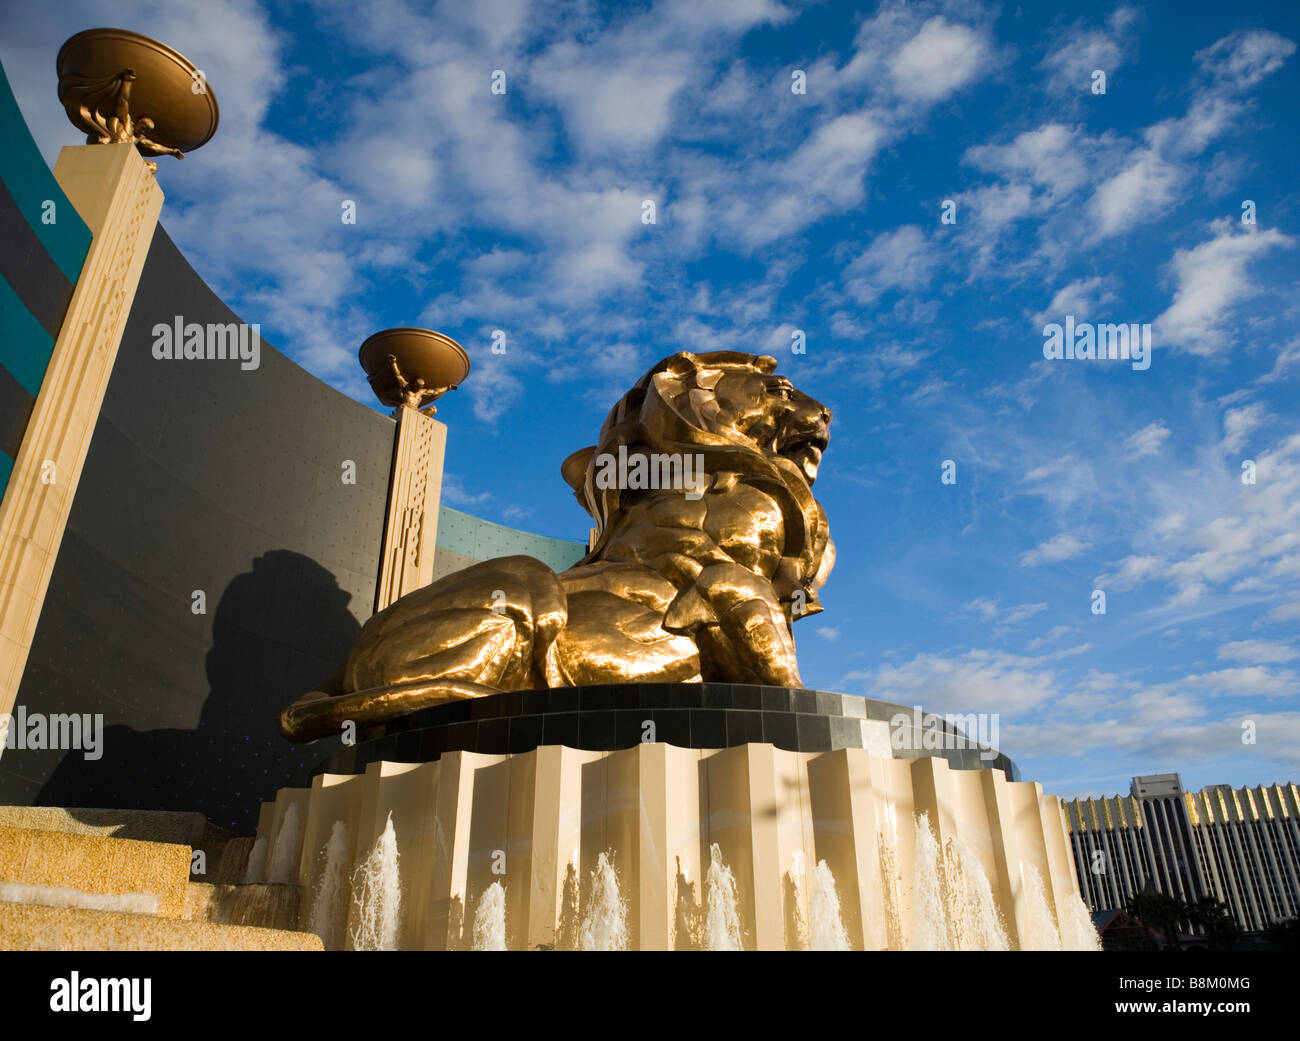 Golden Lion statue at the MGM hotel and casino on the Las Vegas strip, Nevada, USA - Stock Image